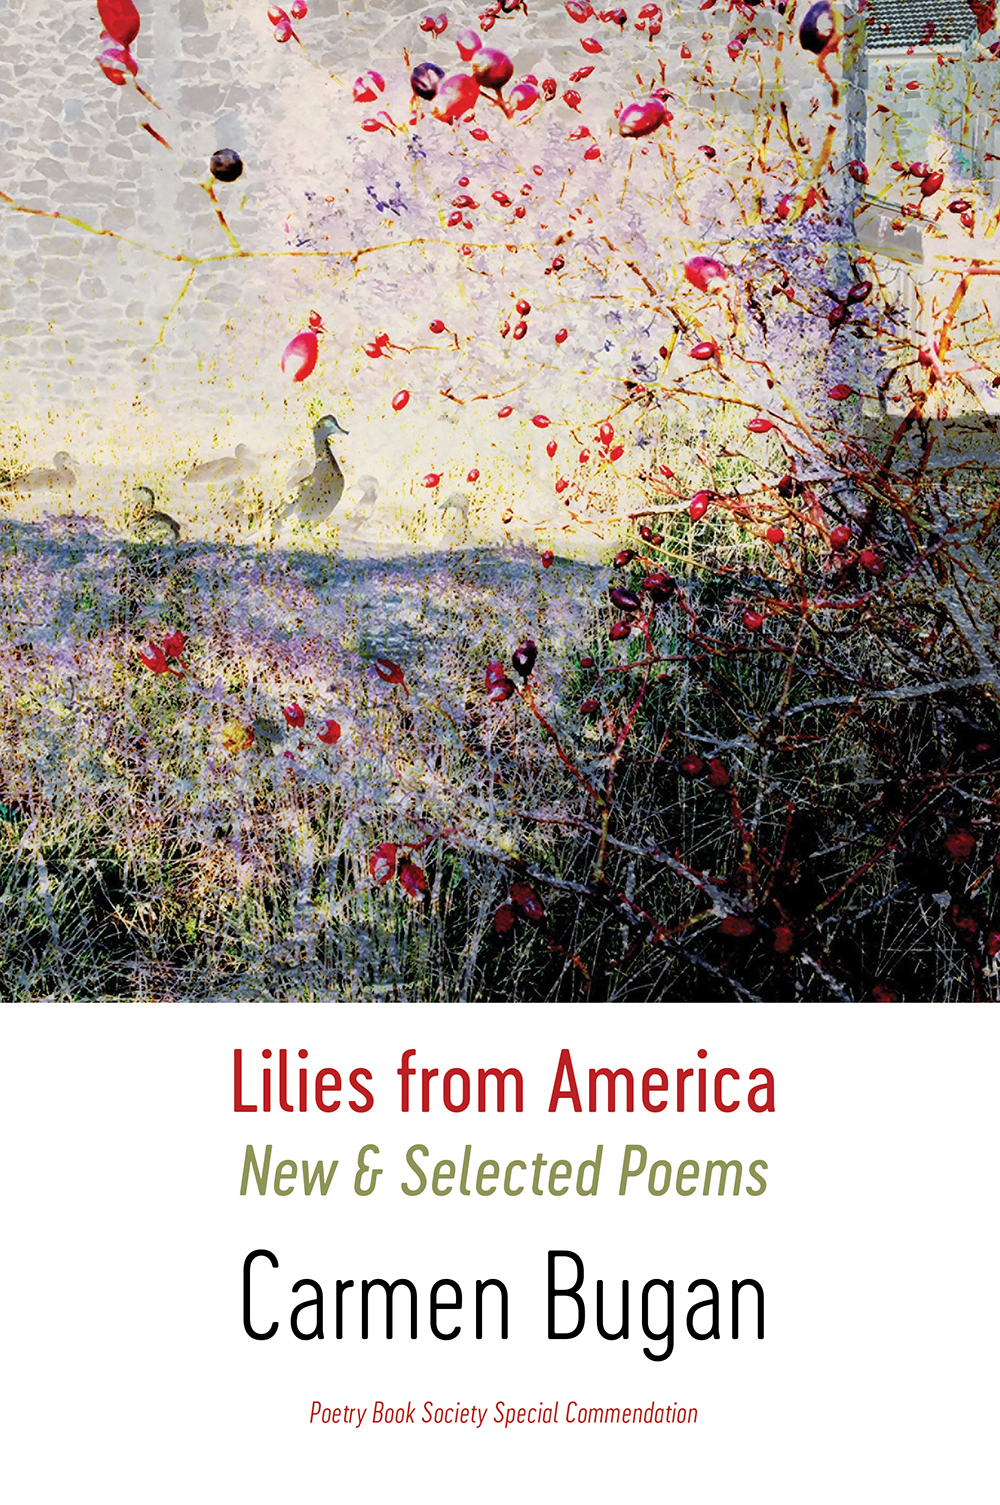 Lilies from America: New & Selected Poems